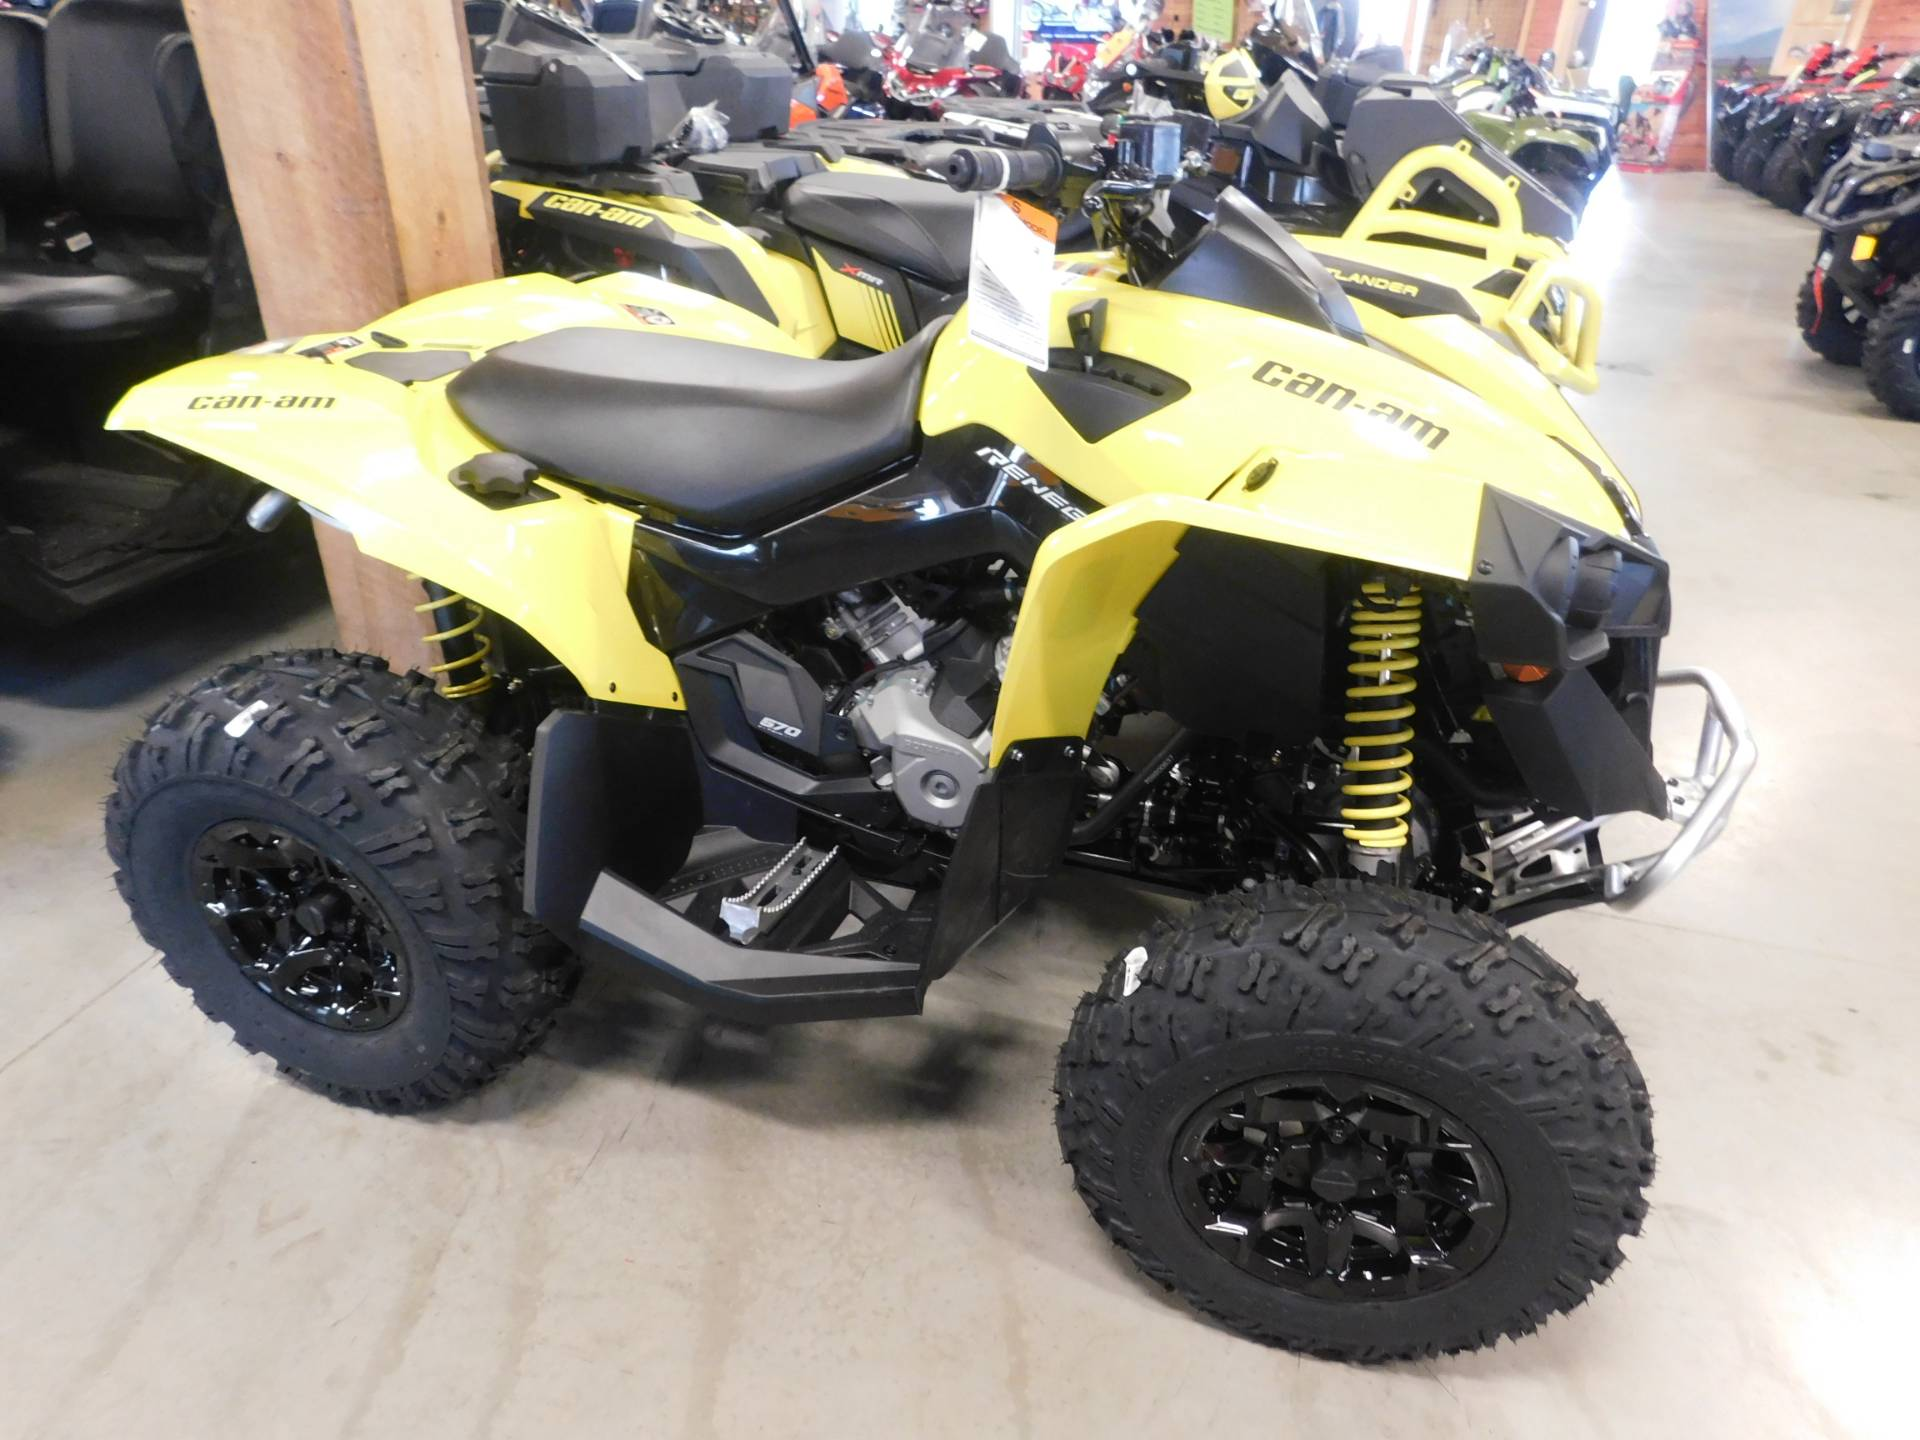 2019 Can-Am Renegade 570 in Sauk Rapids, Minnesota - Photo 1